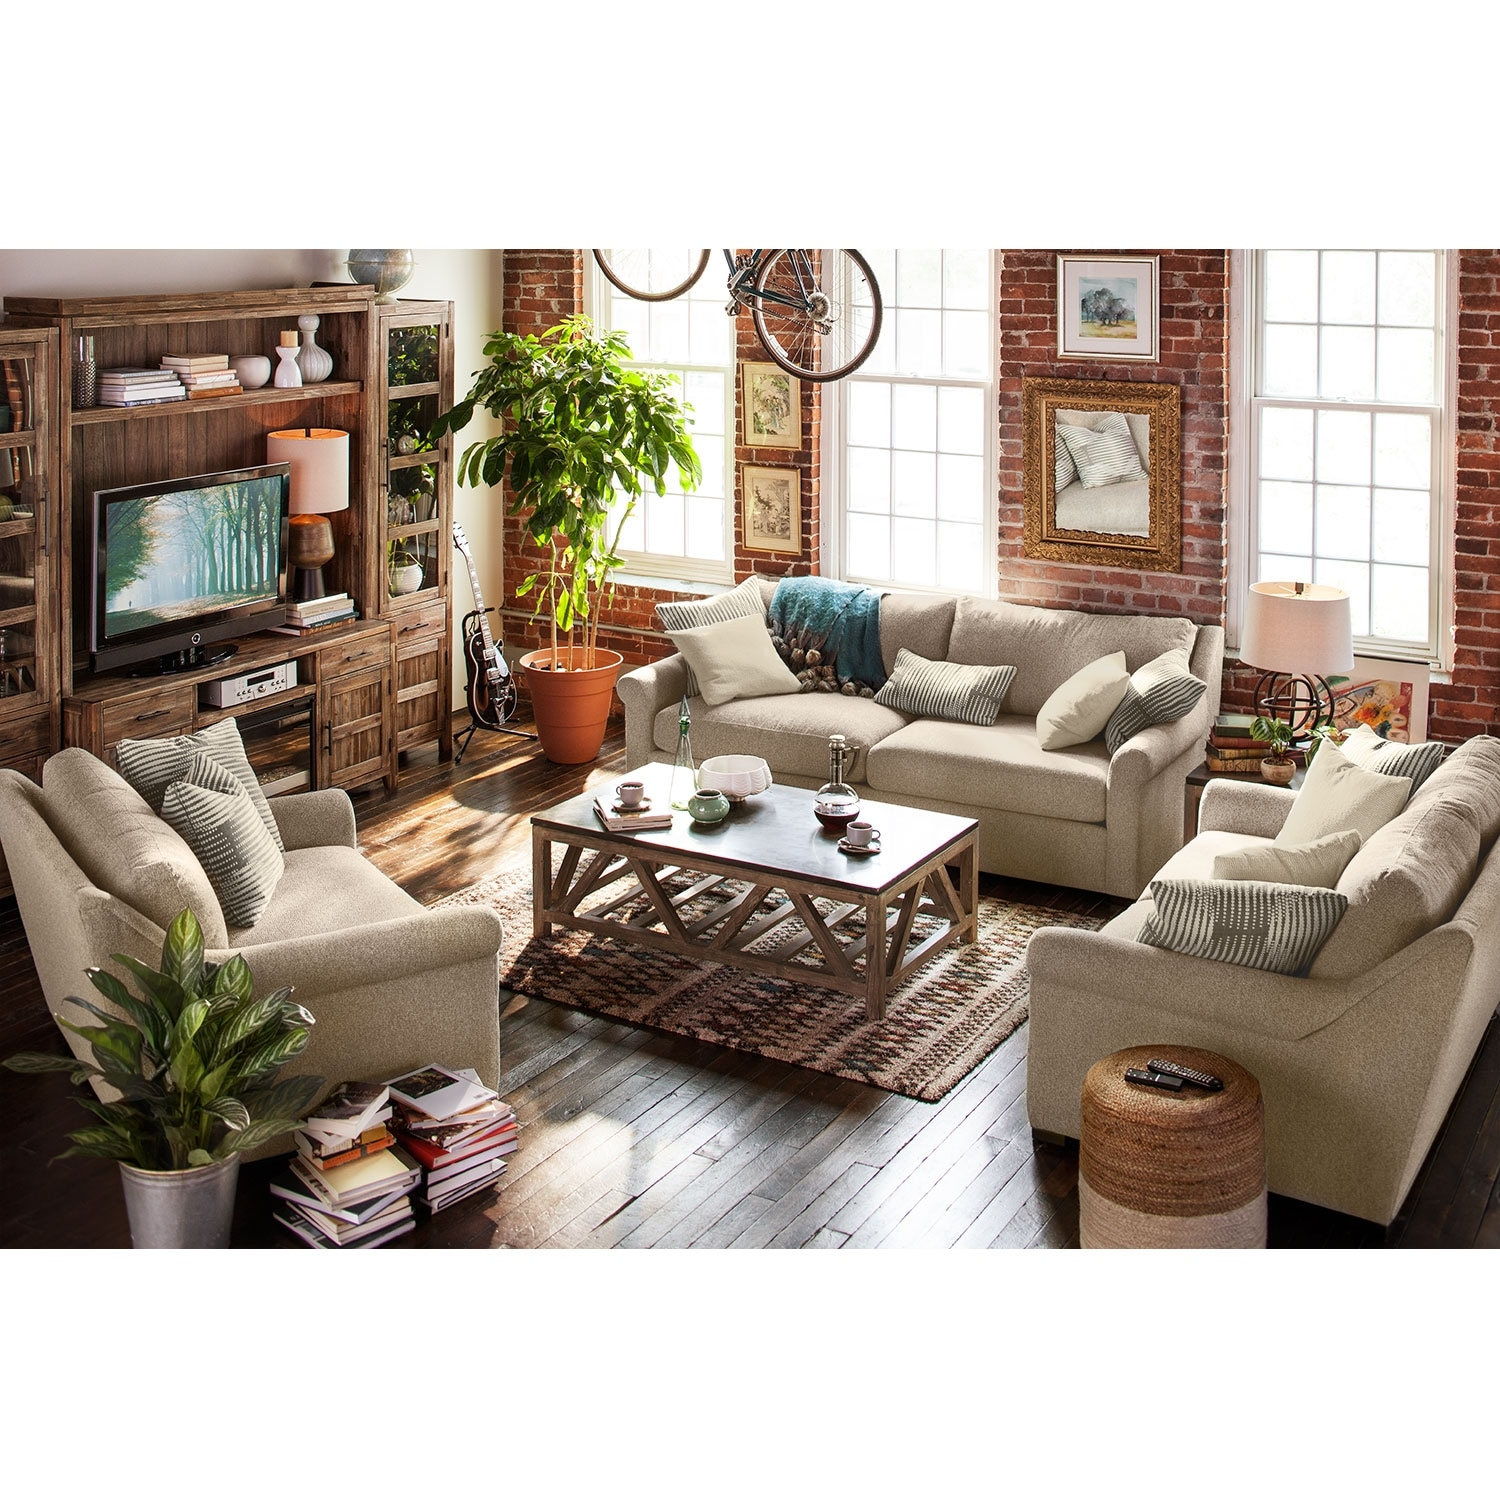 Roberston cumulus sofa loveseat and chair and a half set for Living room packages